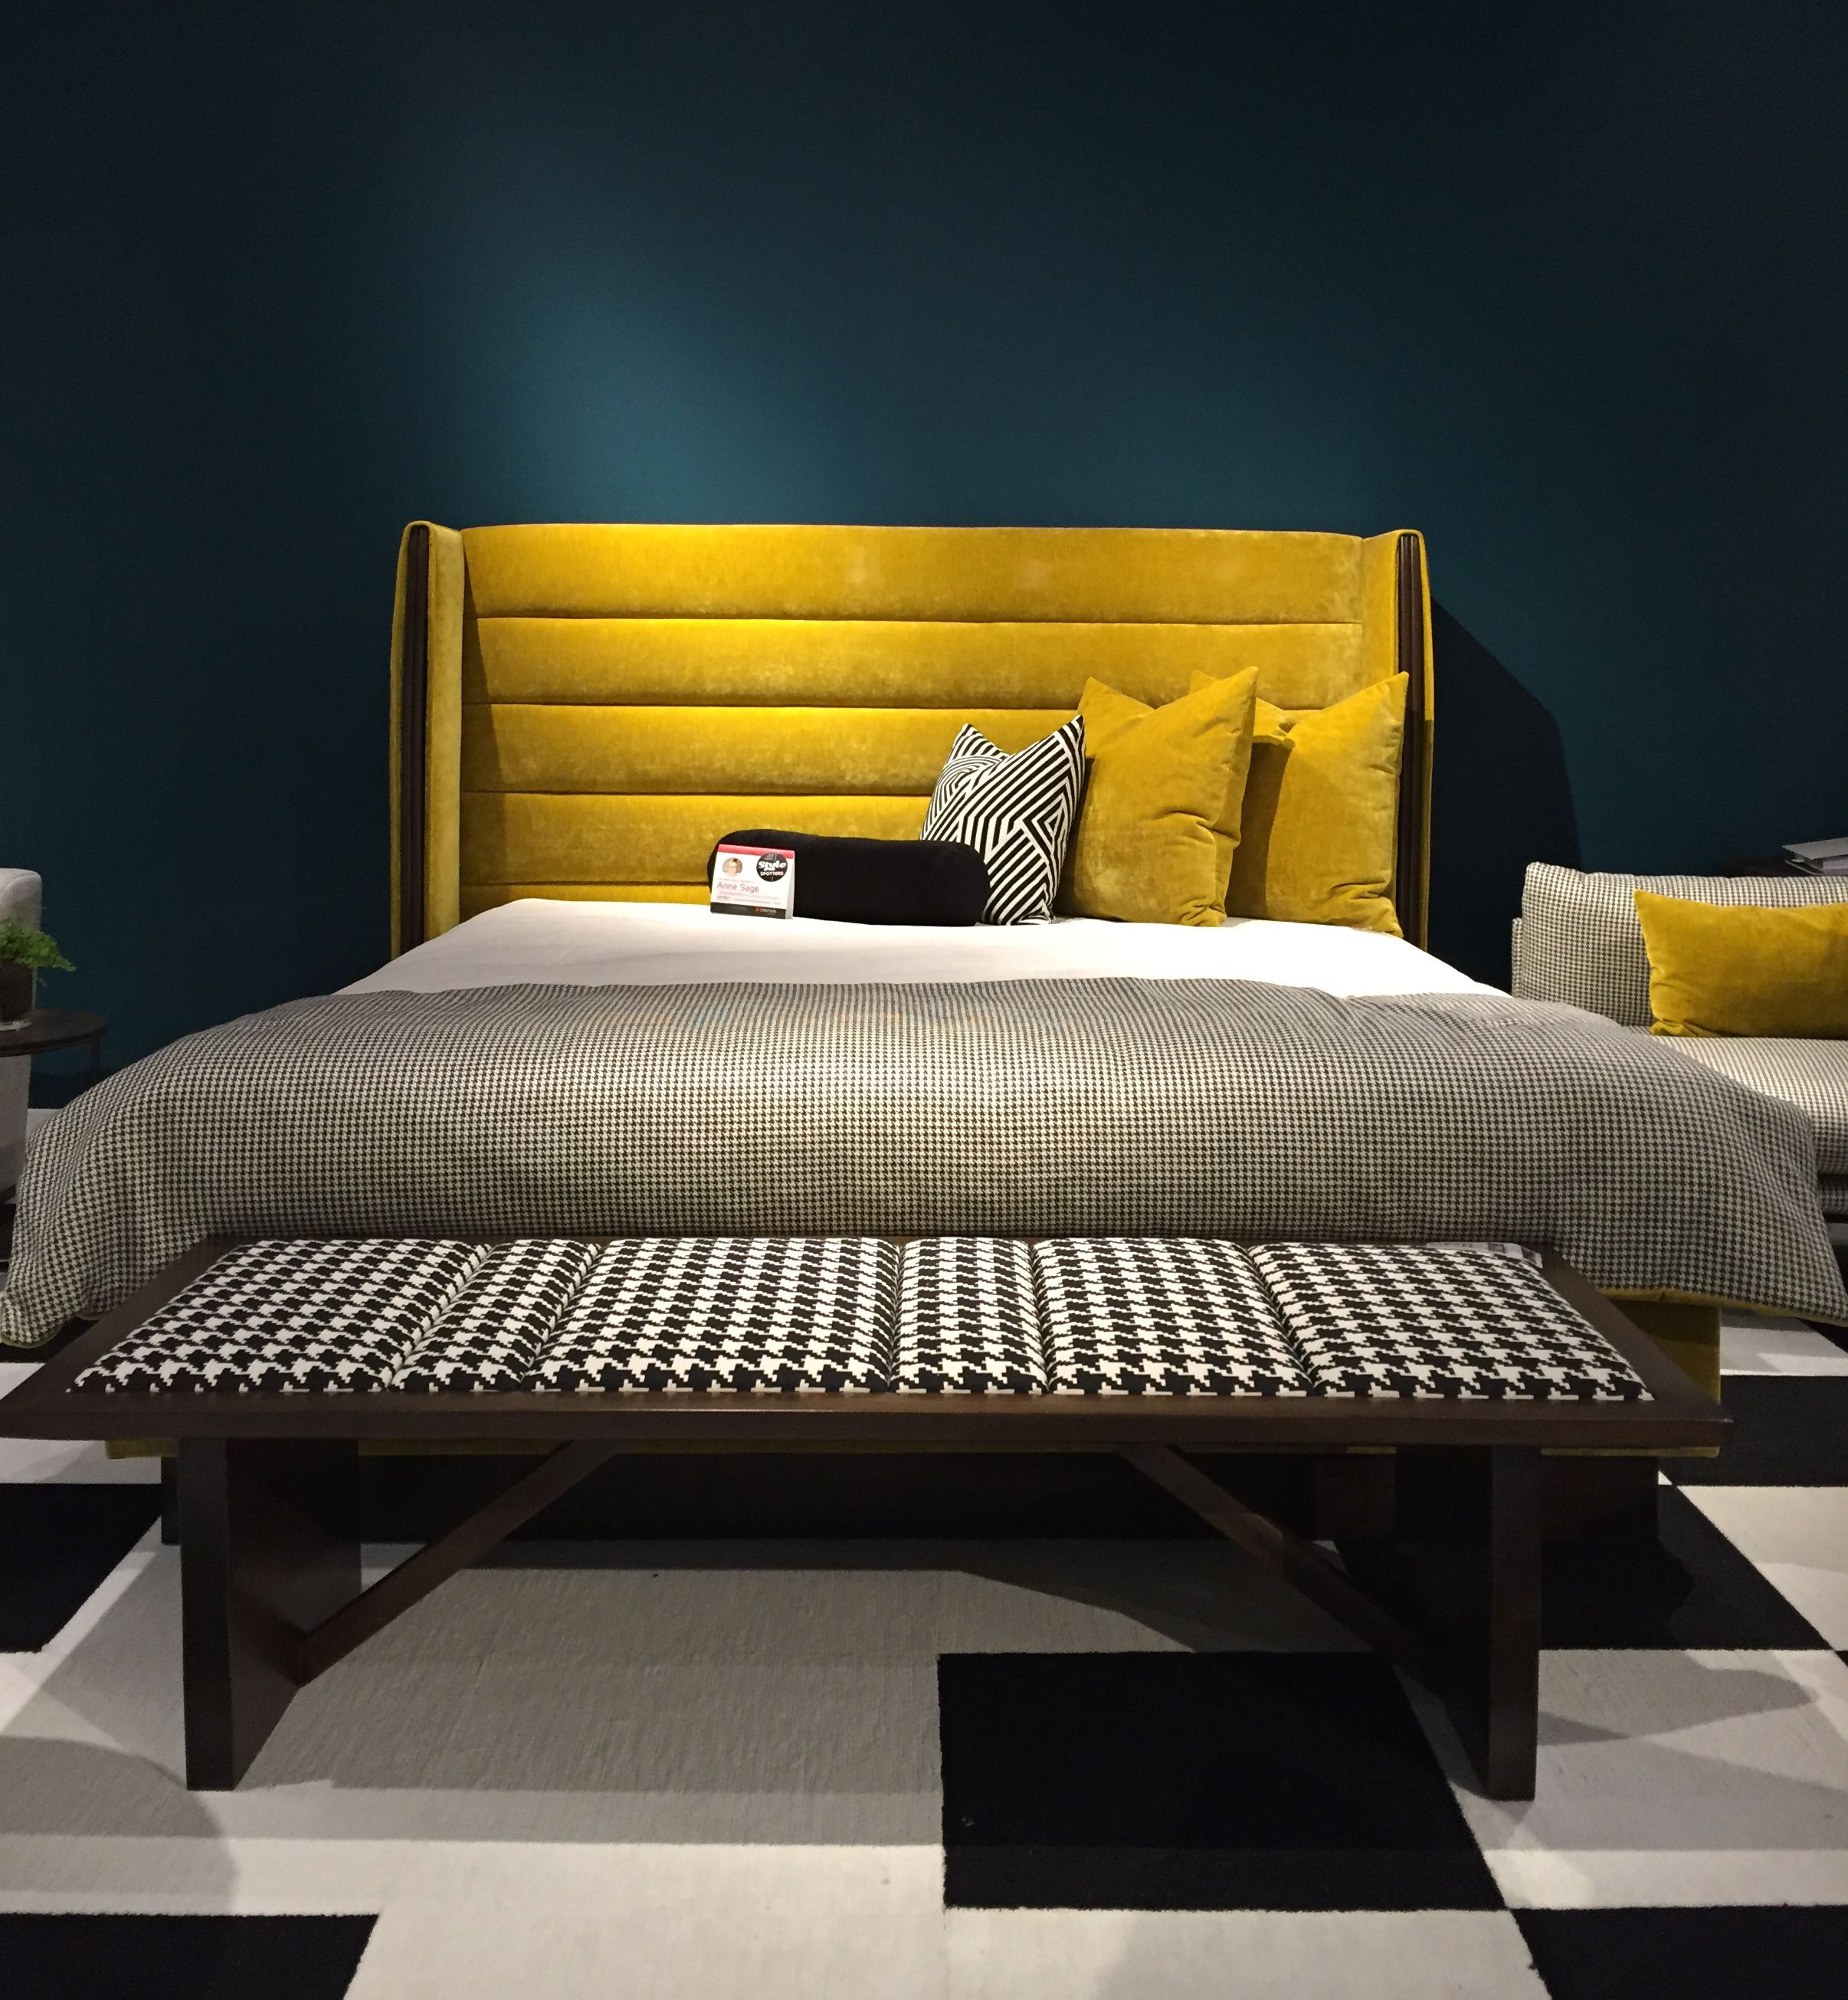 Gorgeous Horizontal Channel Tufted Headboard In A Rich Mustard